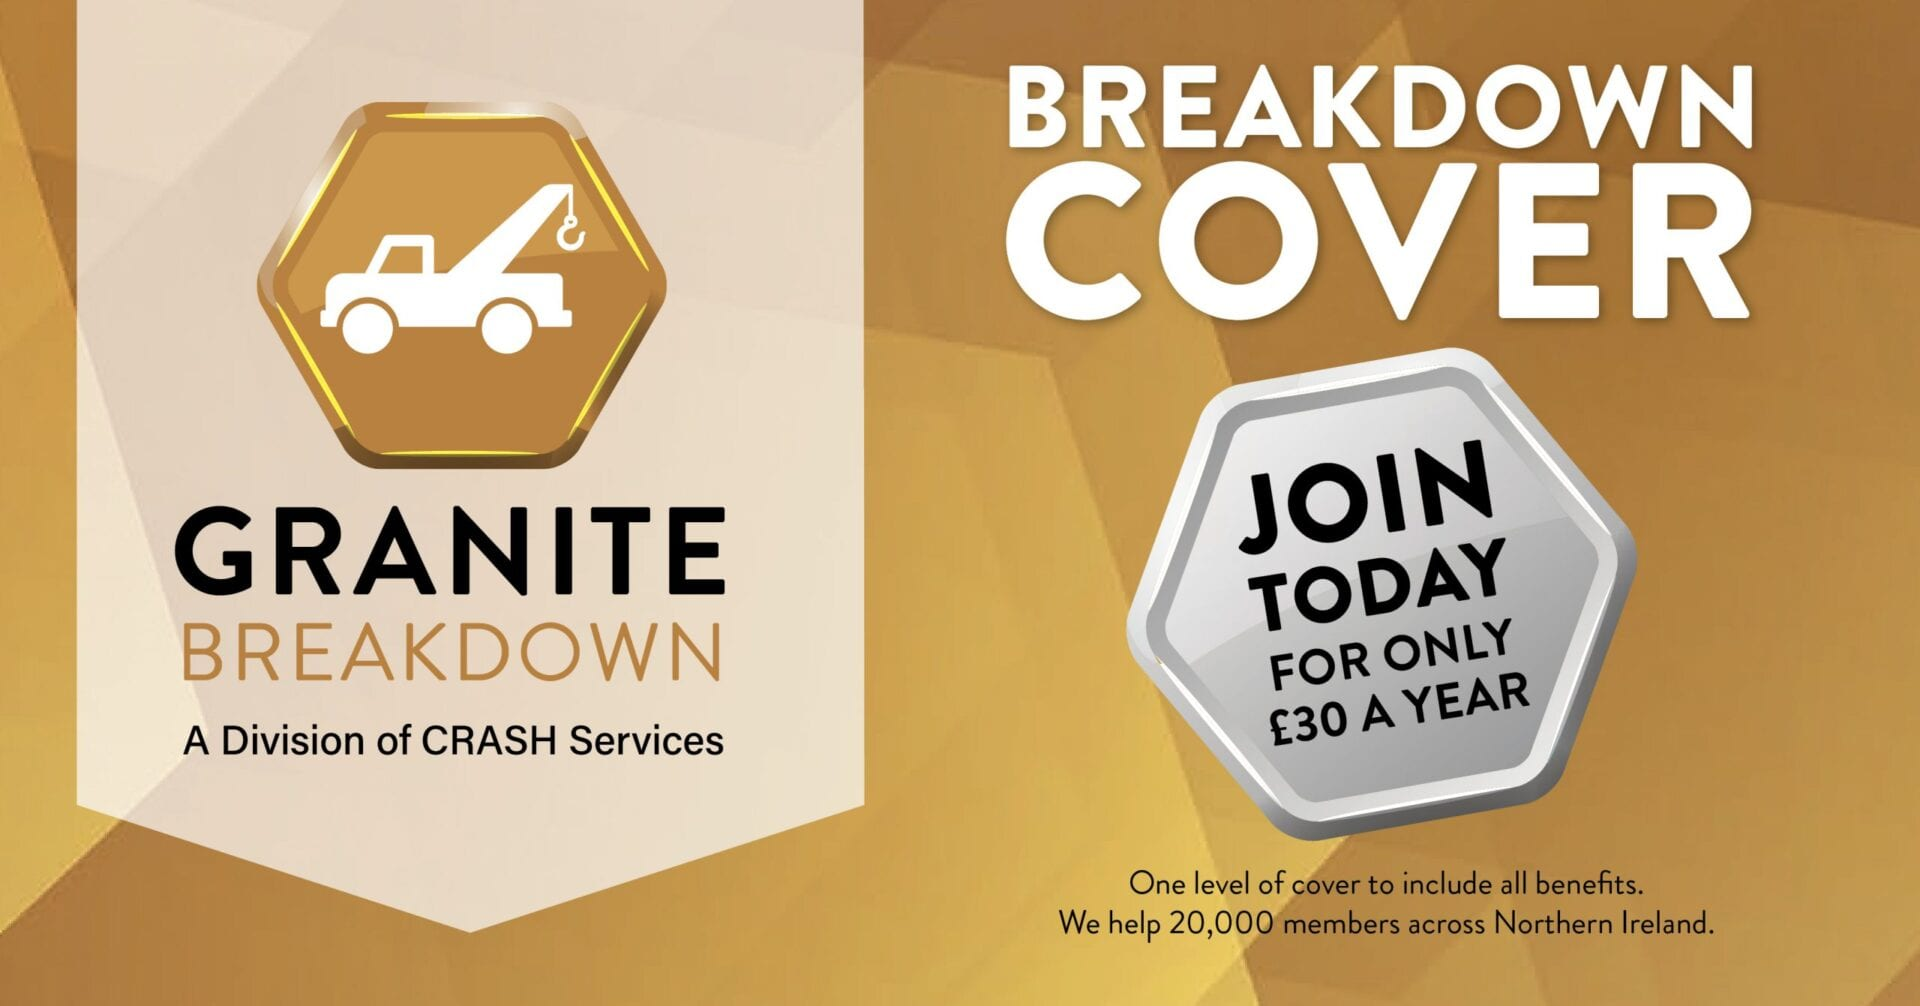 Granite Breakdown cover - Join today for only £30 a year